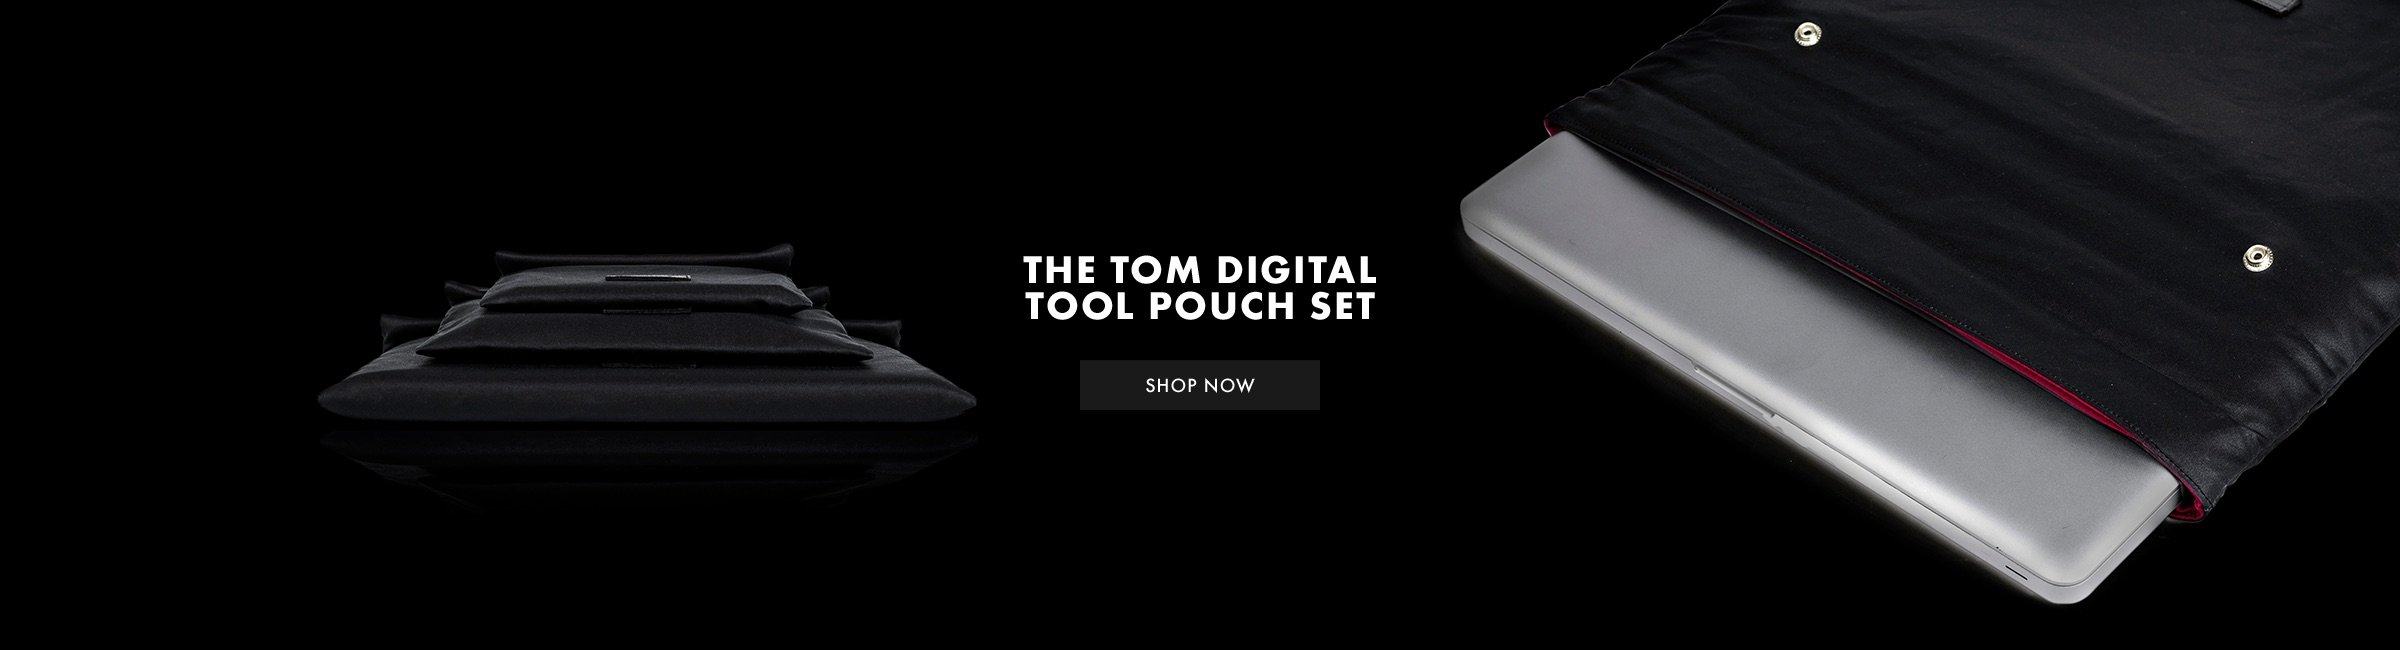 Tom-Tool-Pouch-Set2-1